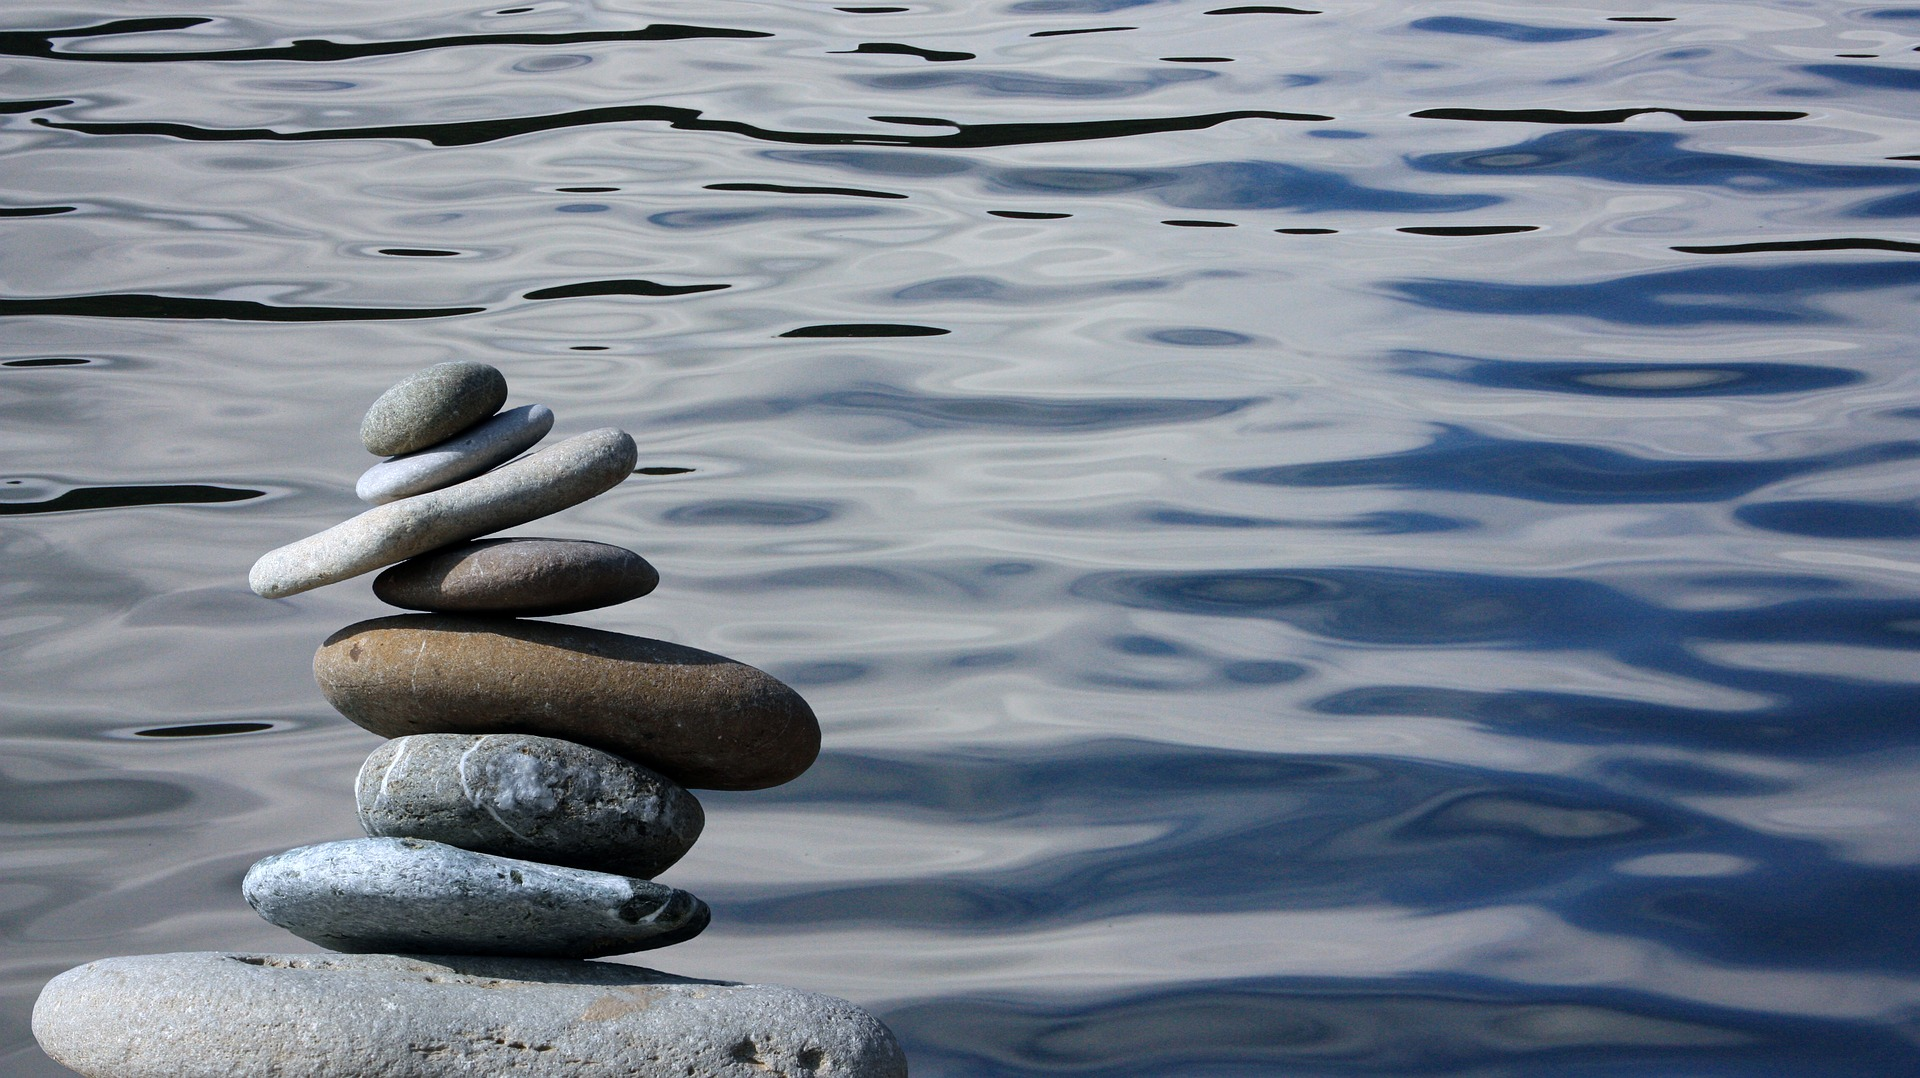 Image of stones balancing to indicate managing anxiety